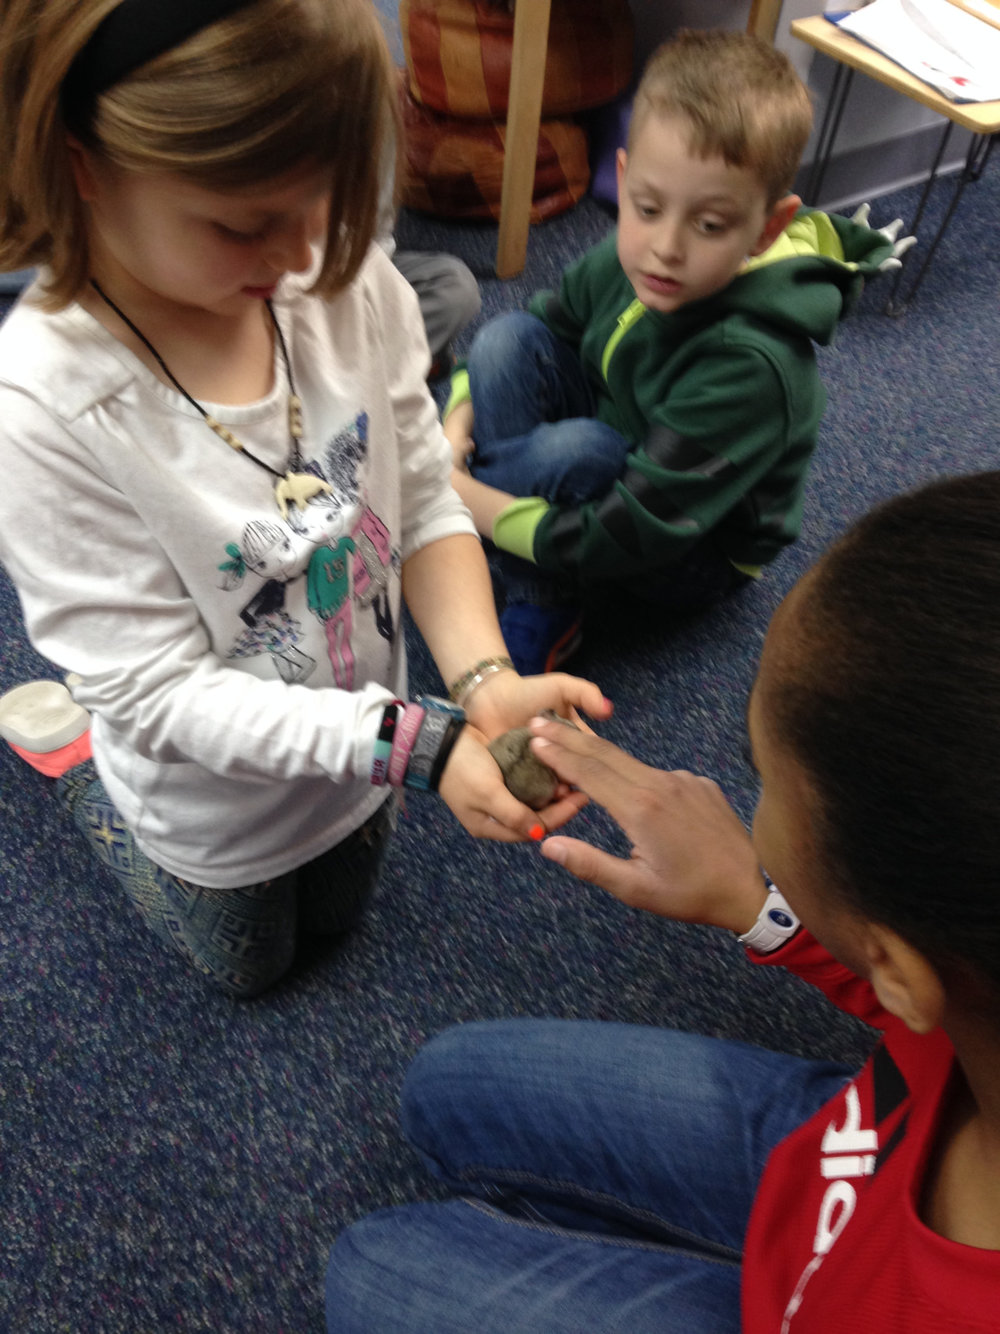 Thanks to a second grade Lower Elementary West student who brought in her pet hamster for her classmates to observe during their Zoology lessons about mammals.